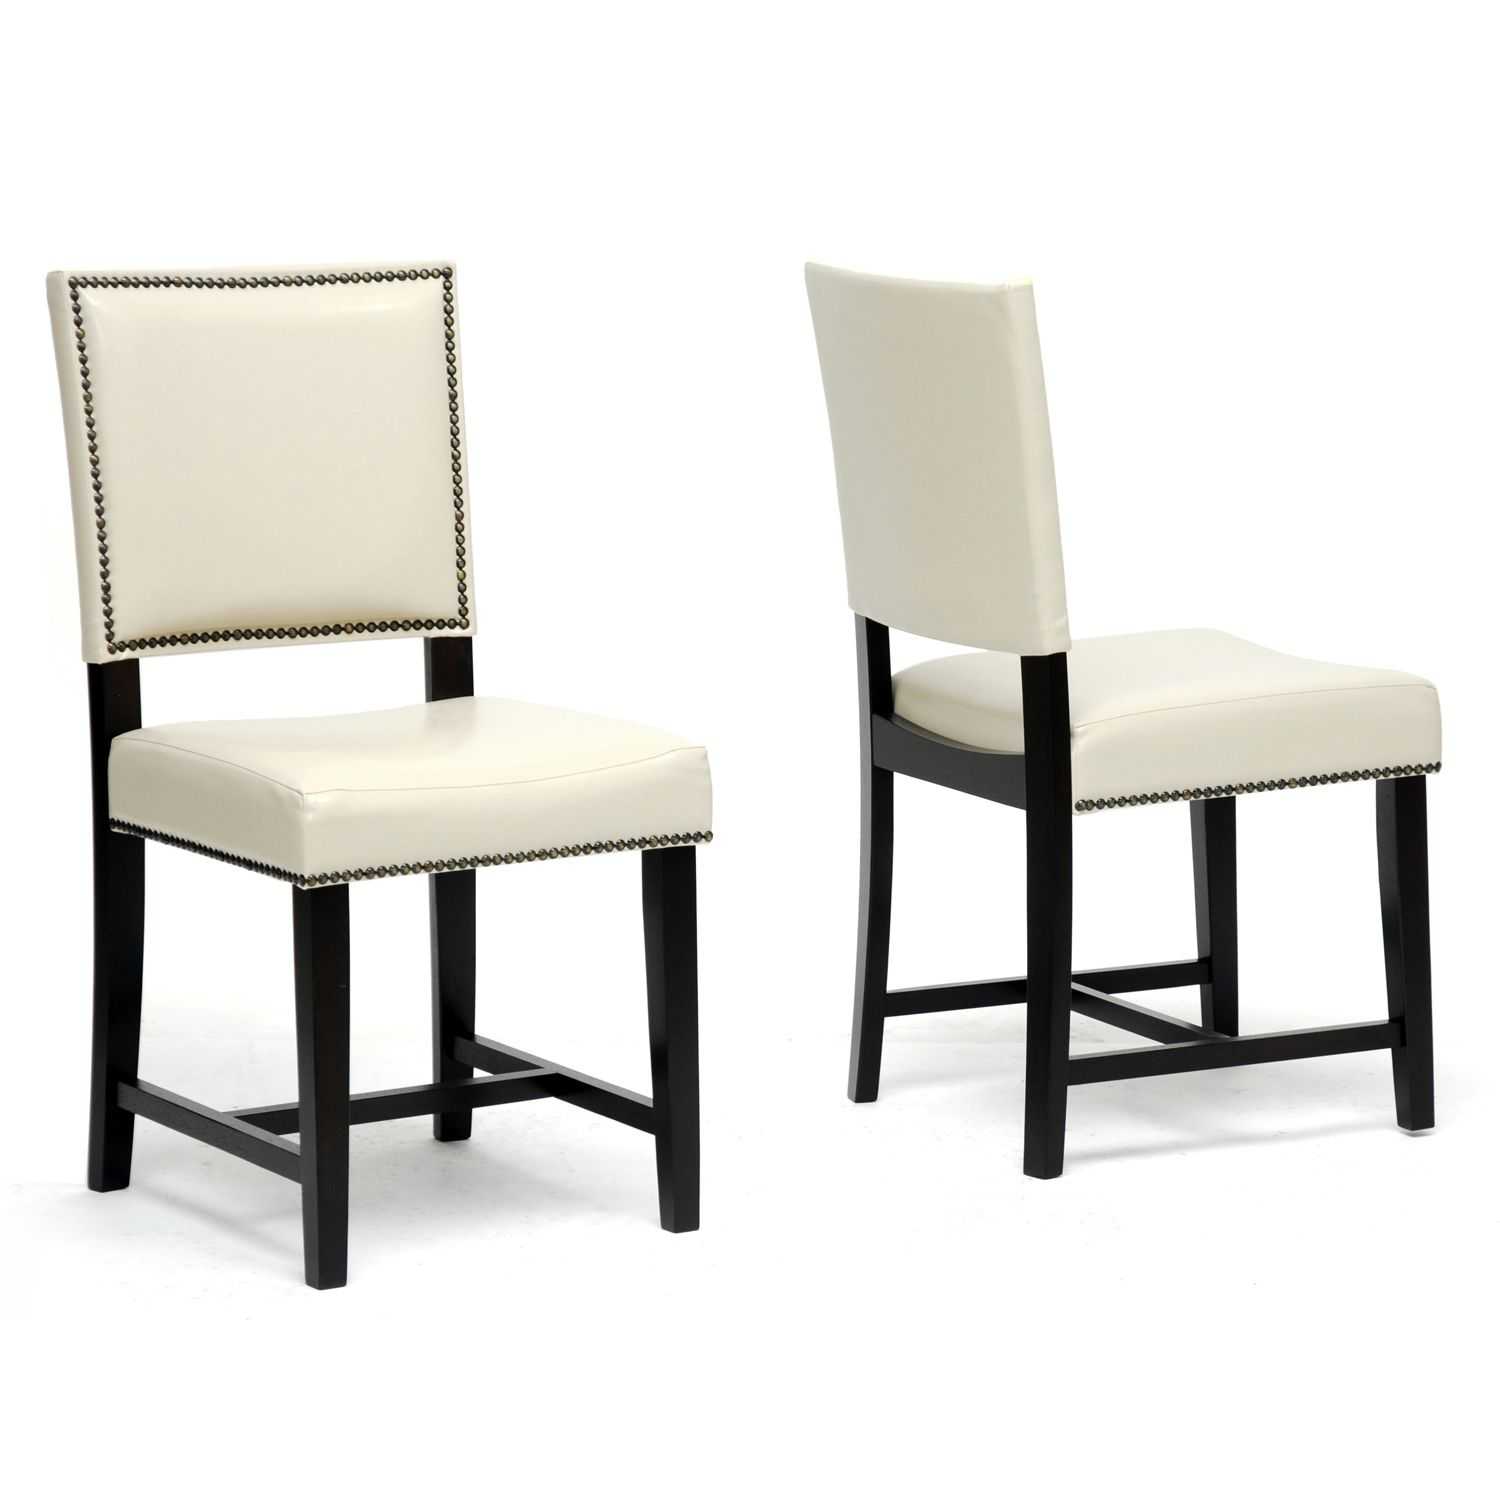 Overstock Com Online Shopping Bedding Furniture Electronics Jewelry Clothing More Faux Leather Dining Chairs Cheap Dining Room Chairs Leather Dining Chairs